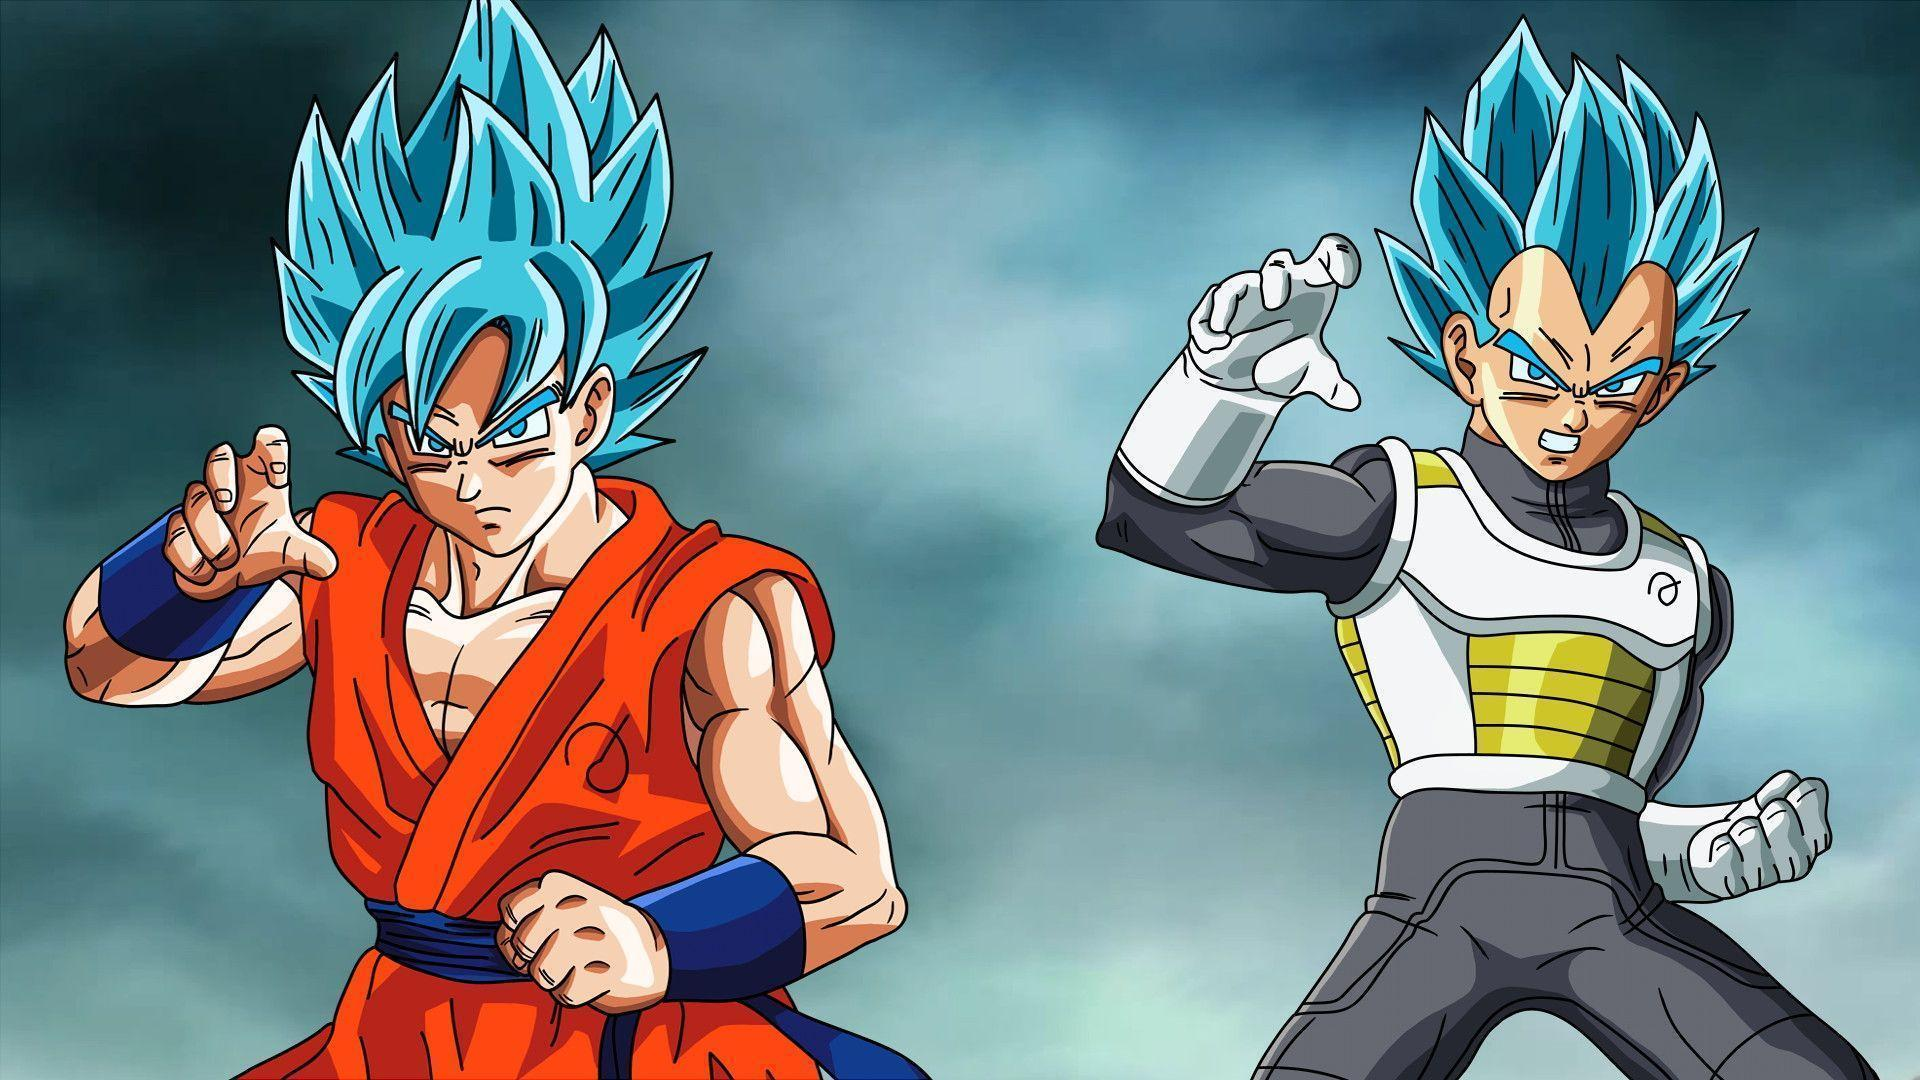 Dragon ball super wallpapers hd download free